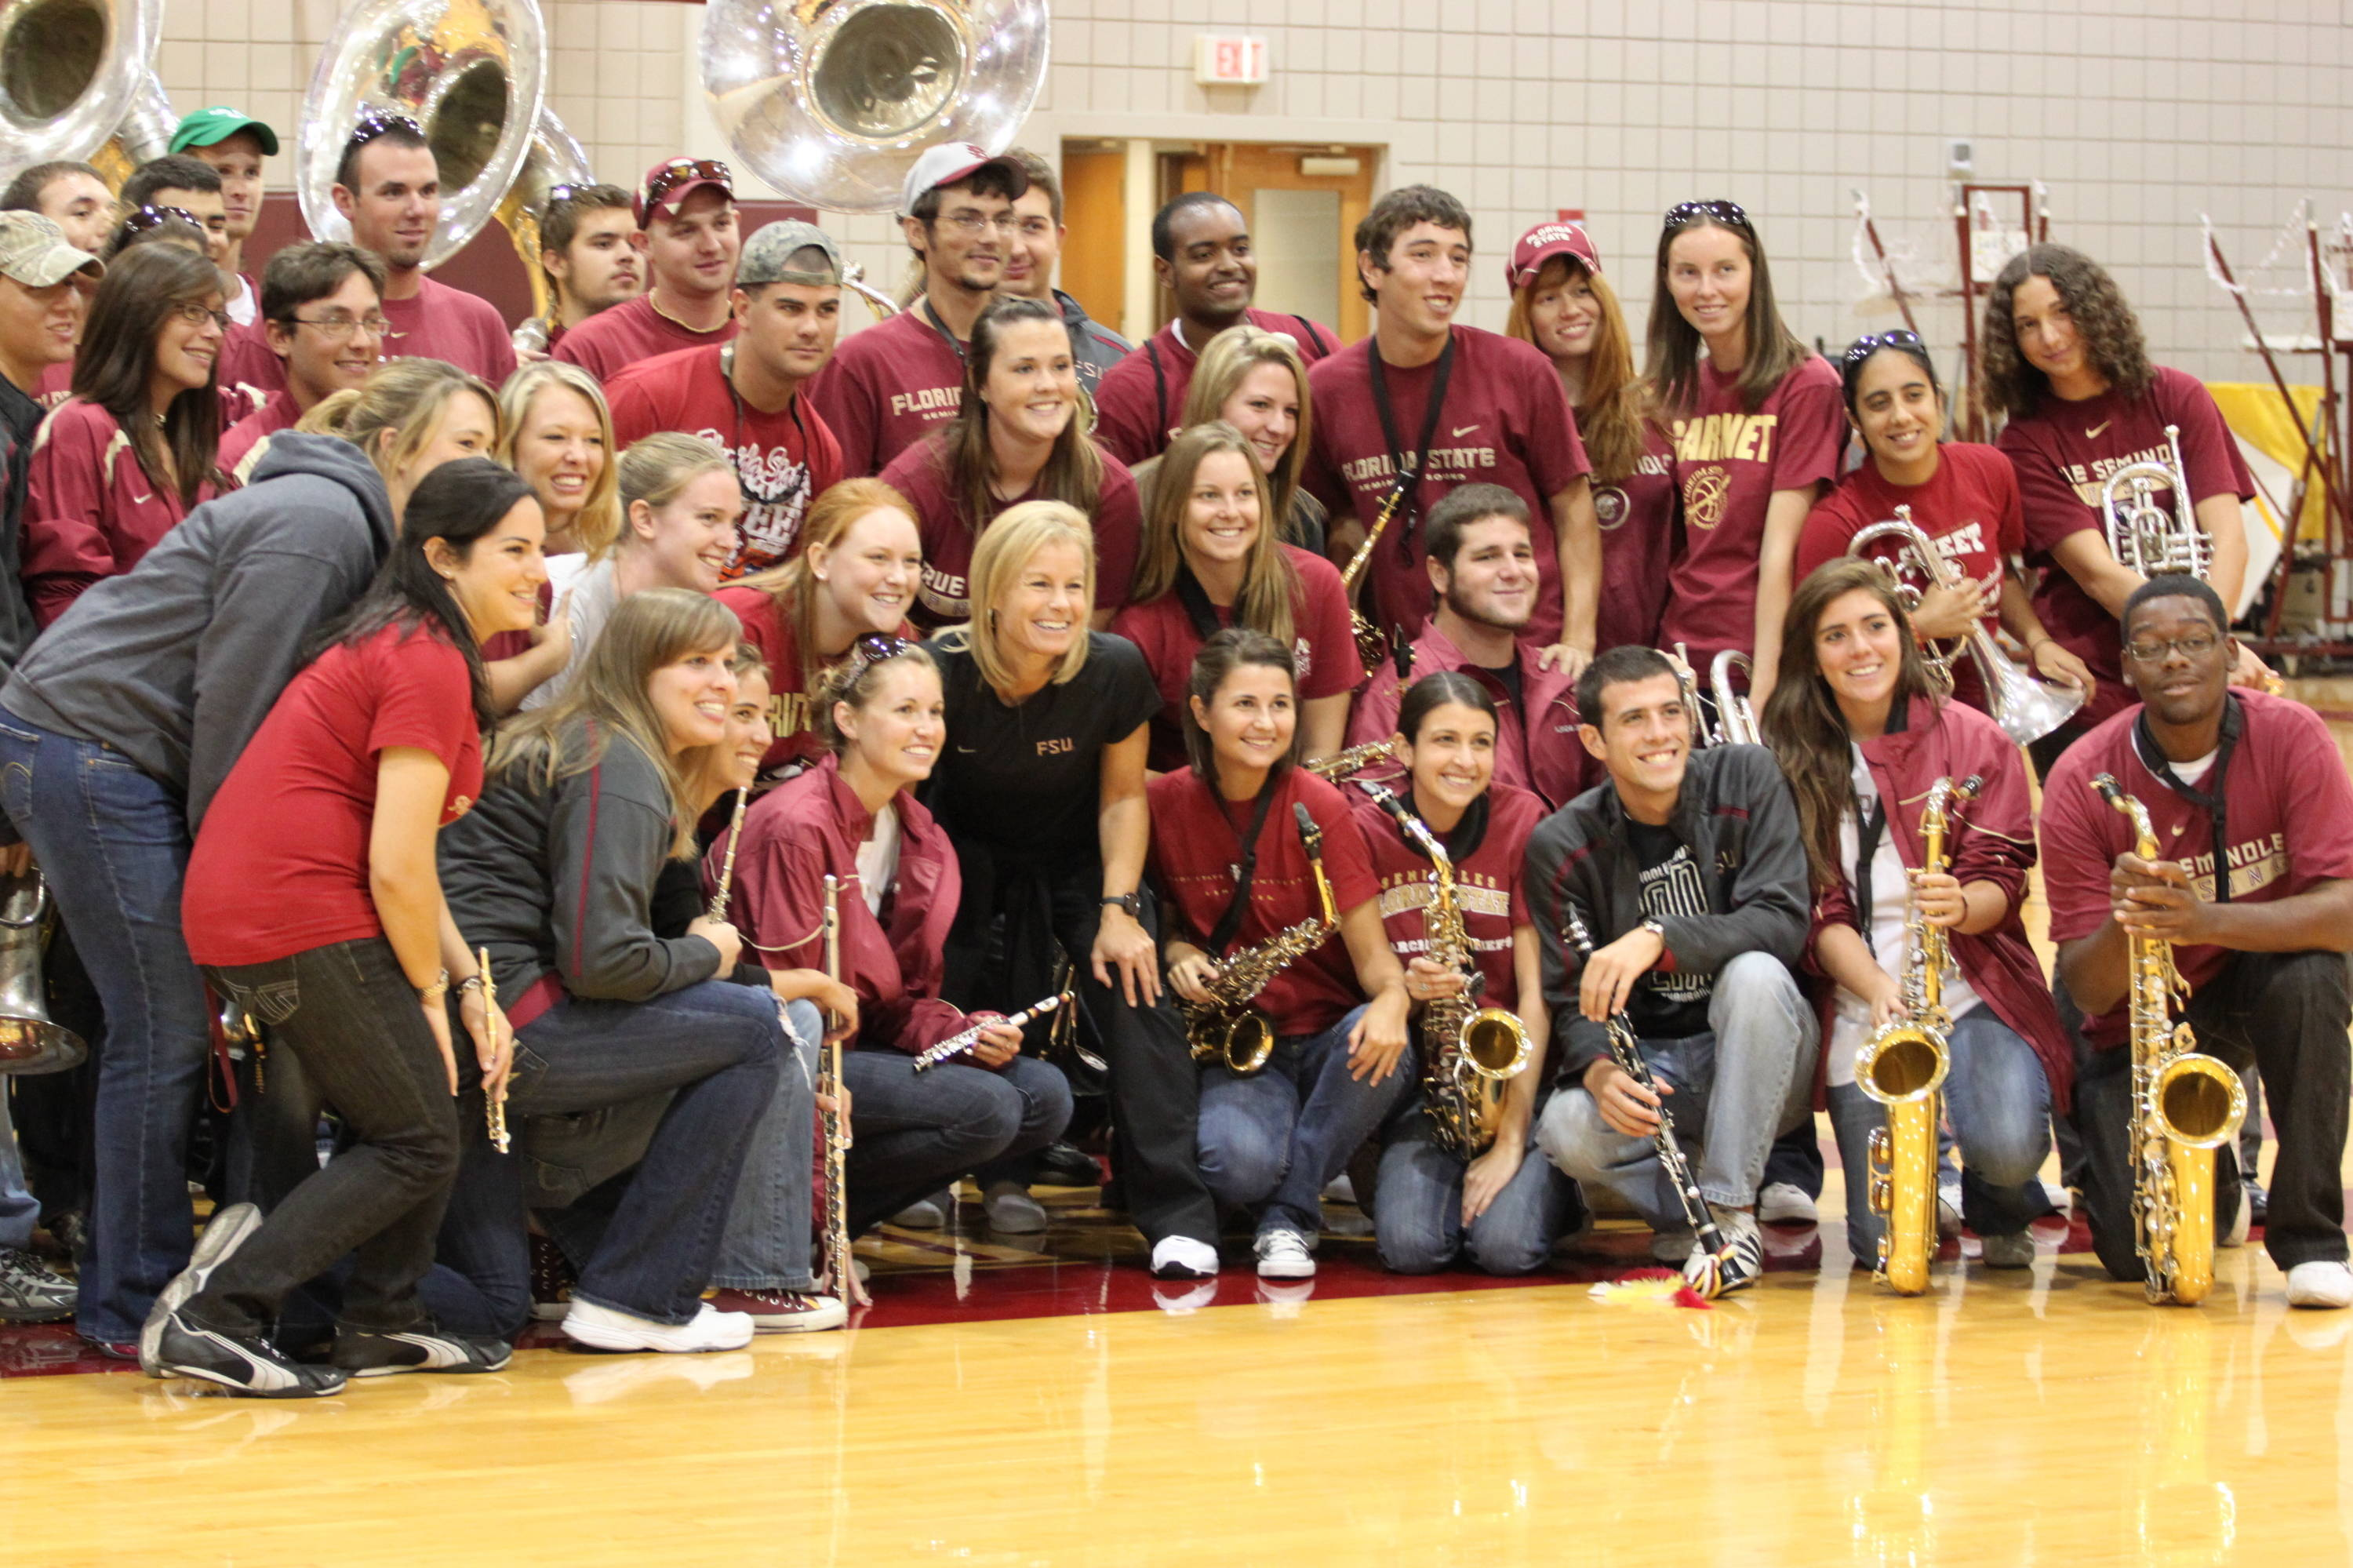 Head coach Sue Semrau posed with Seminole Sound after band was finished playing the Warchant.